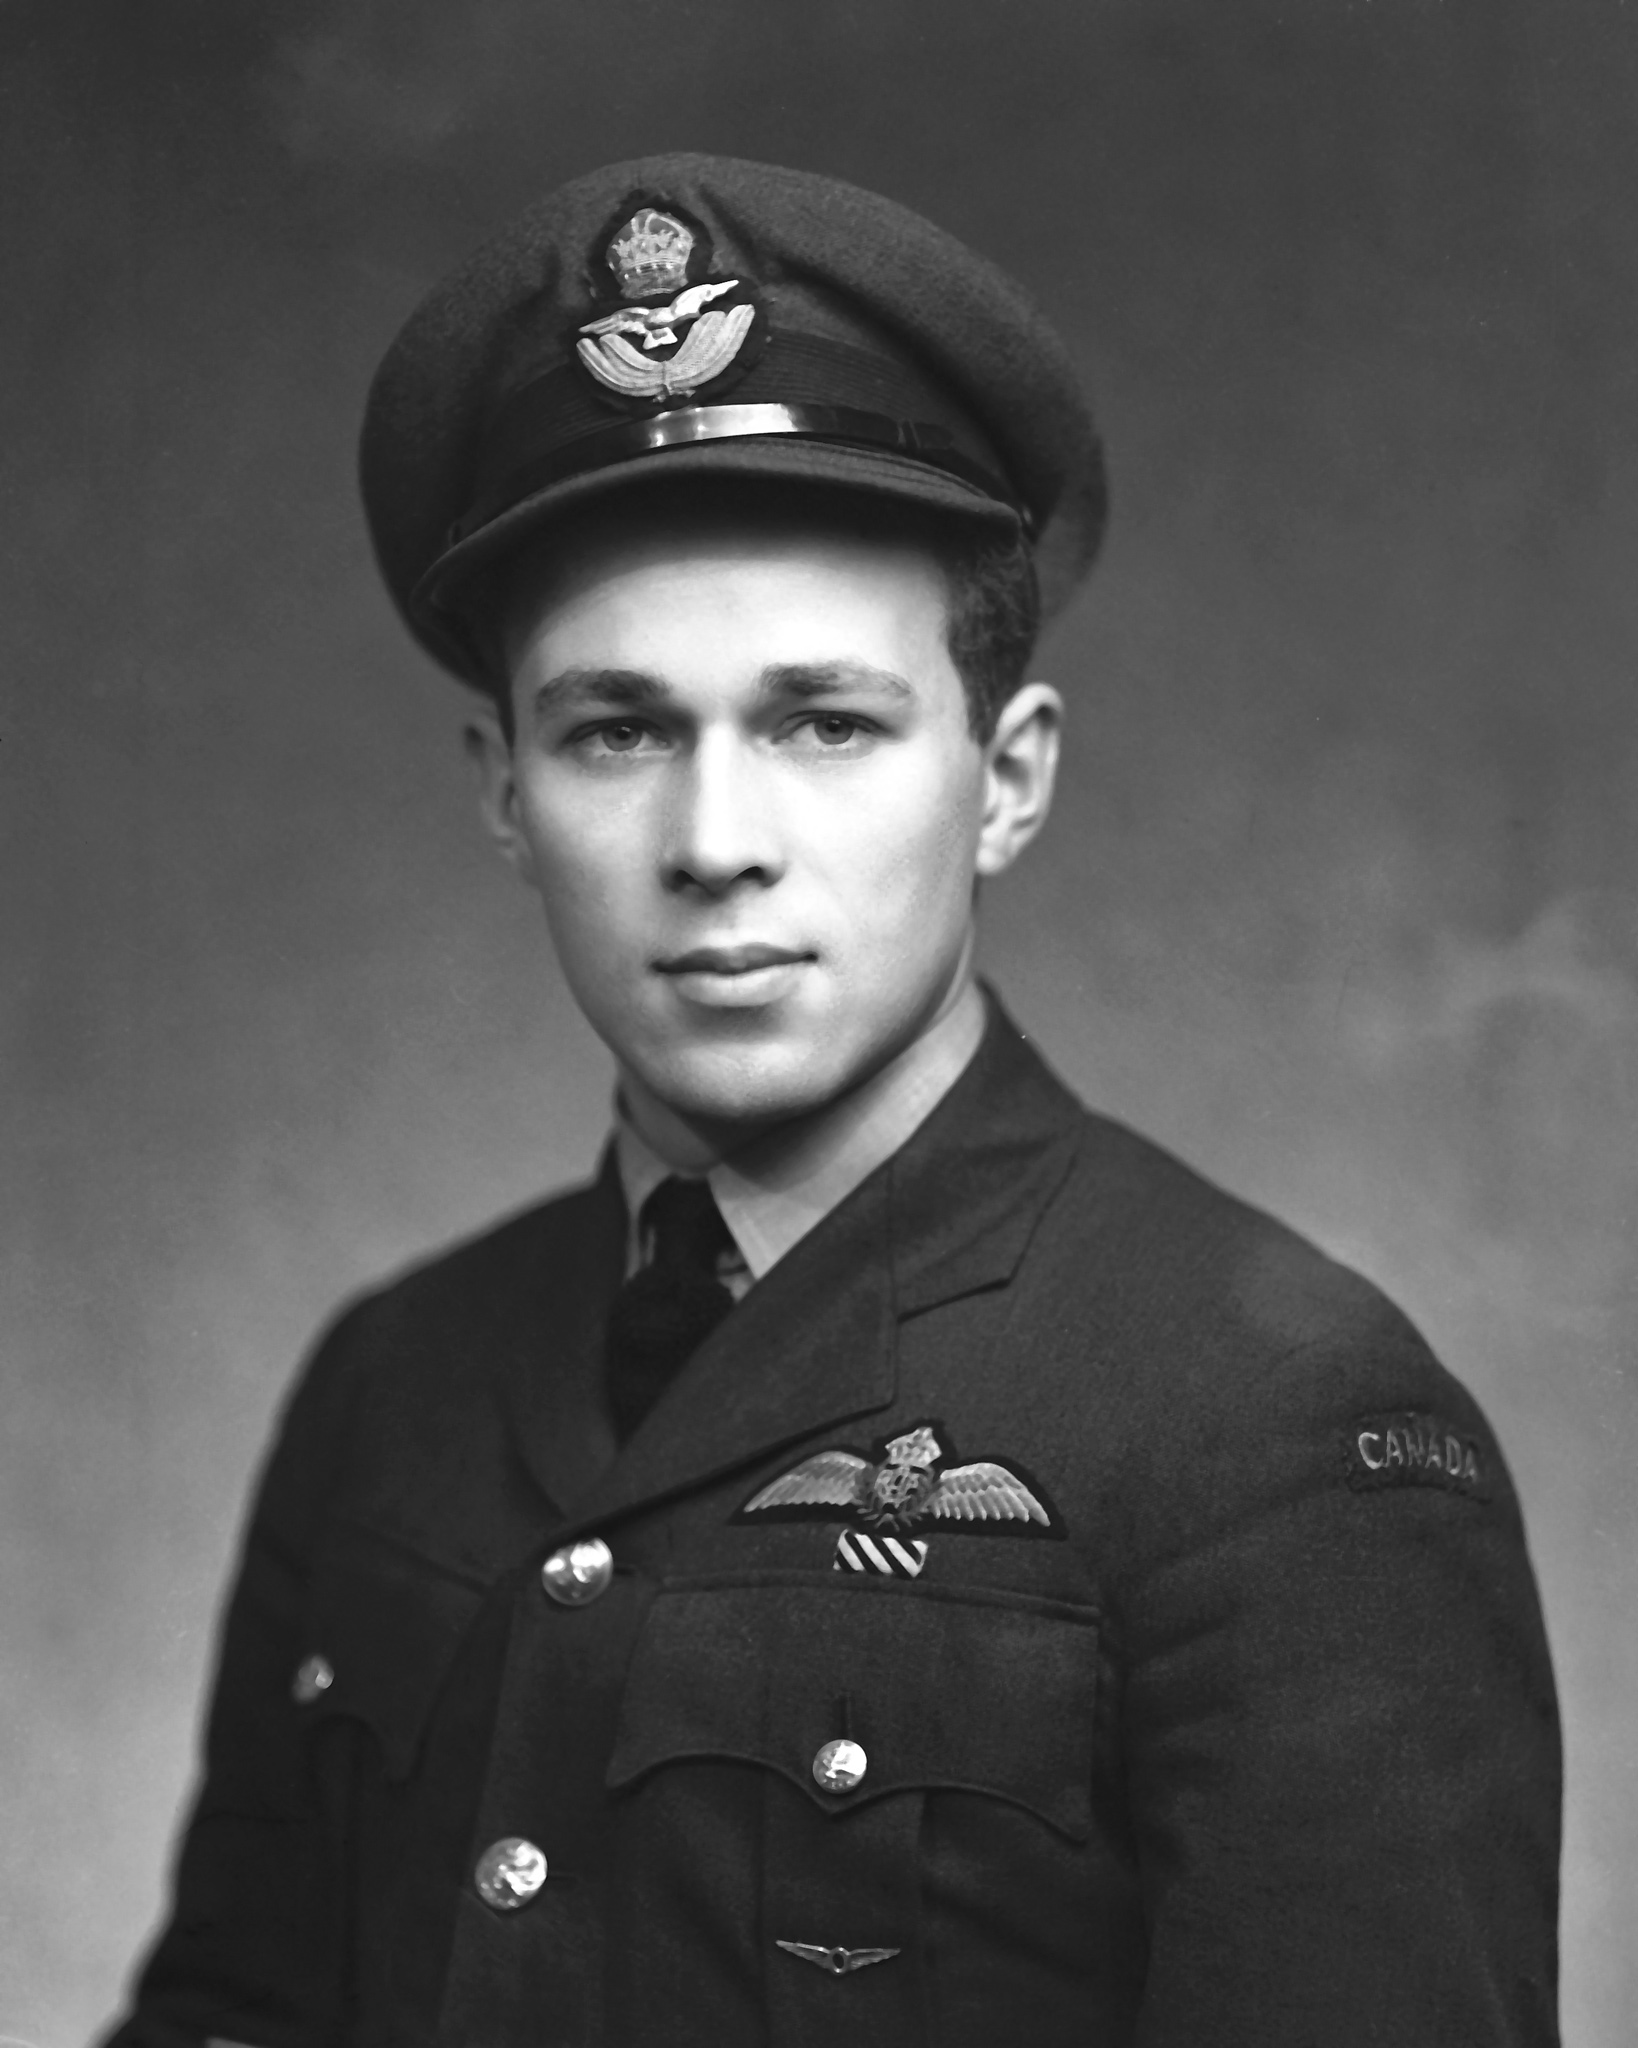 A portrait of Flying Officer Richard Rohmer, DFC, of Hamilton, Ontario, taken on January 3, 1945. PHOTO: PL-35523, DND Archives